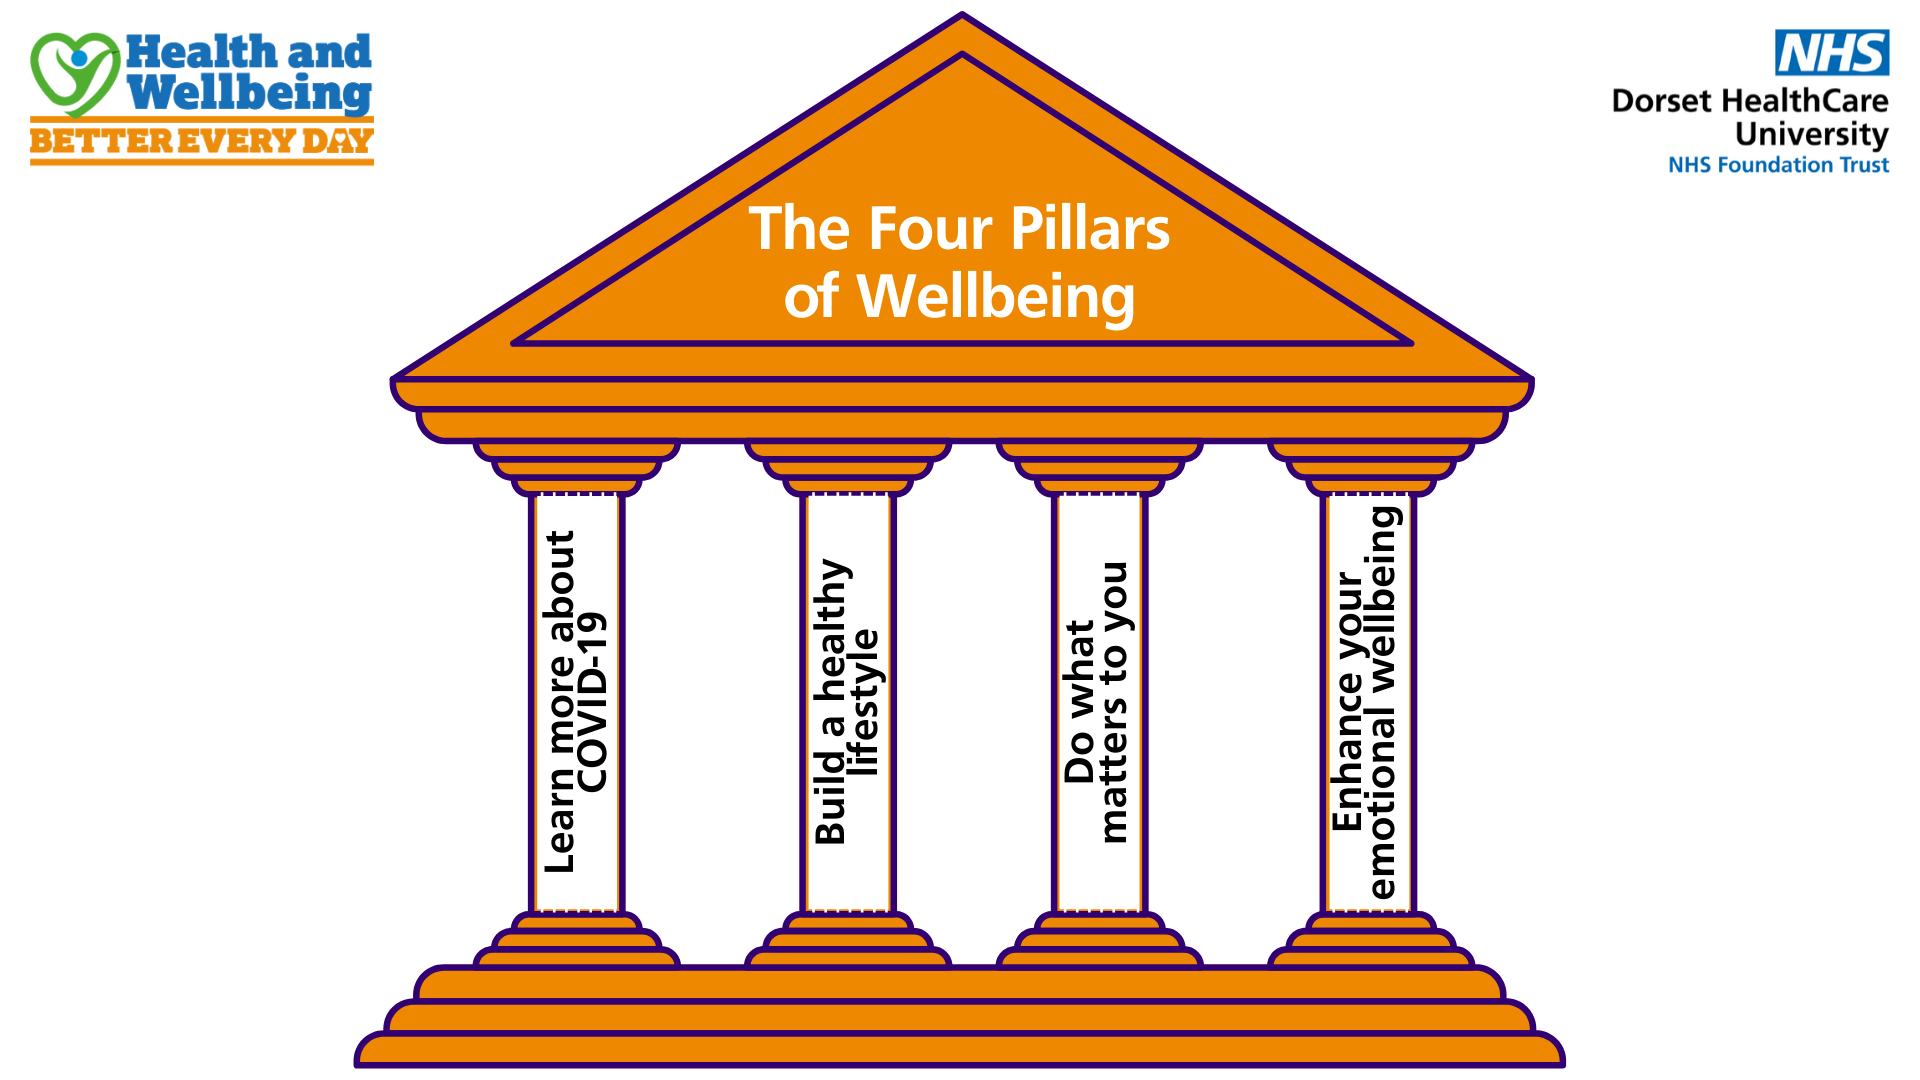 The_Four_Pillars_of_Wellbeing_from_Dorset_HealthCare.png